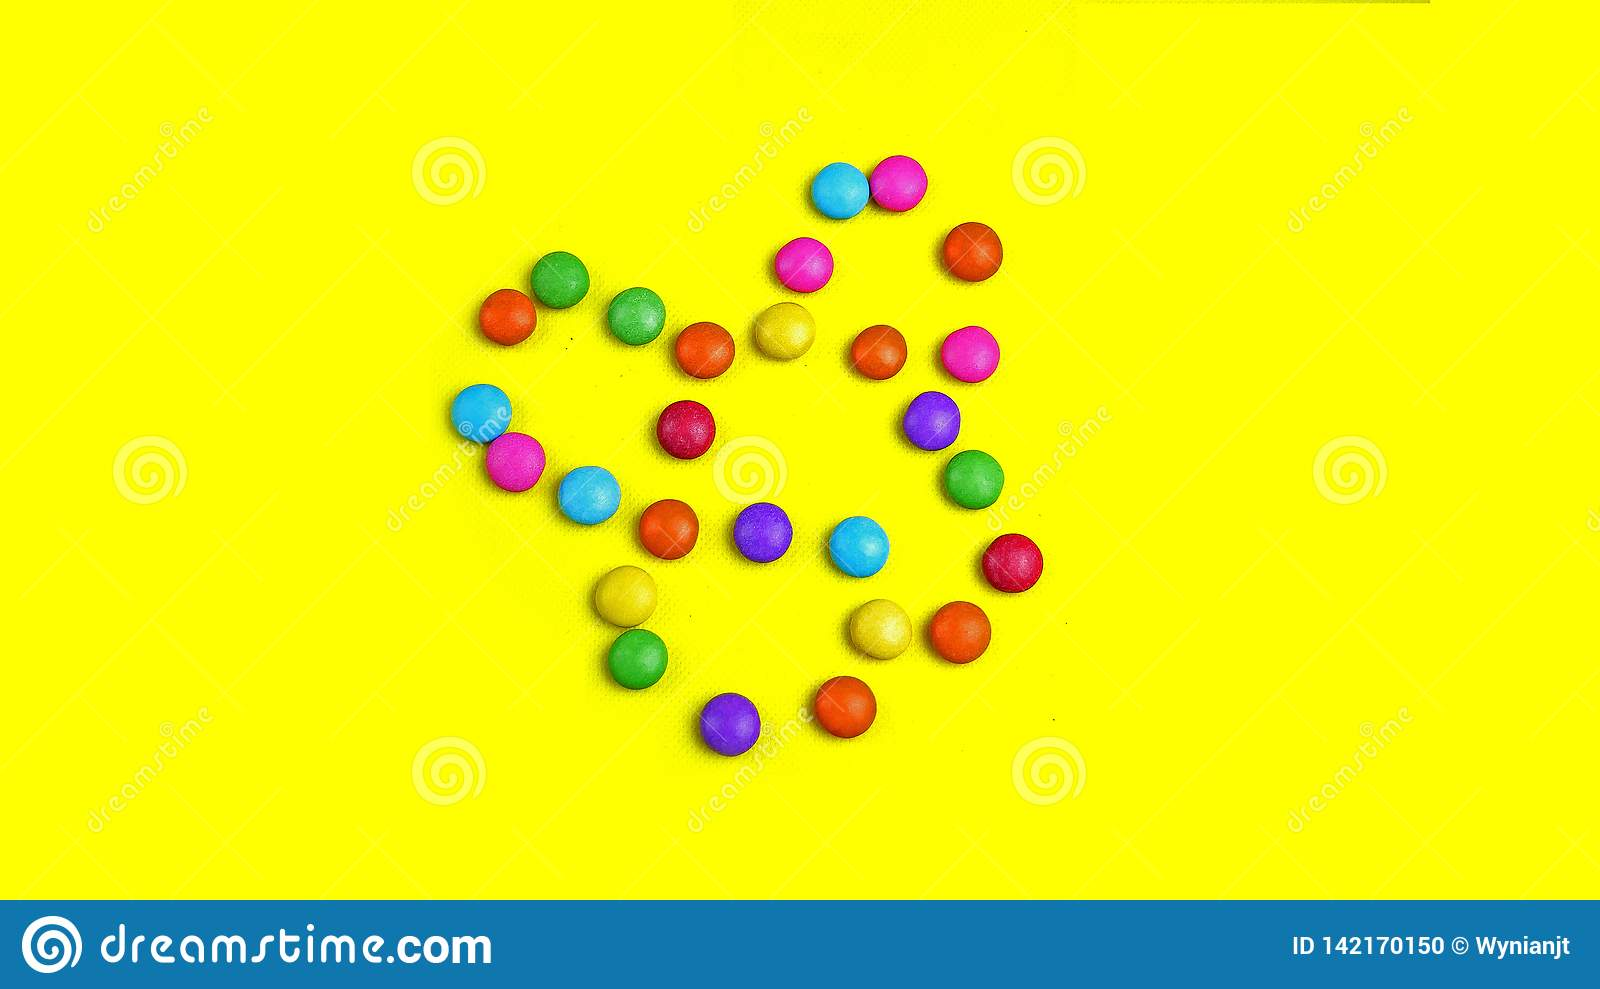 Colorful Chocolade Smarties On The Yellow Background   It Is